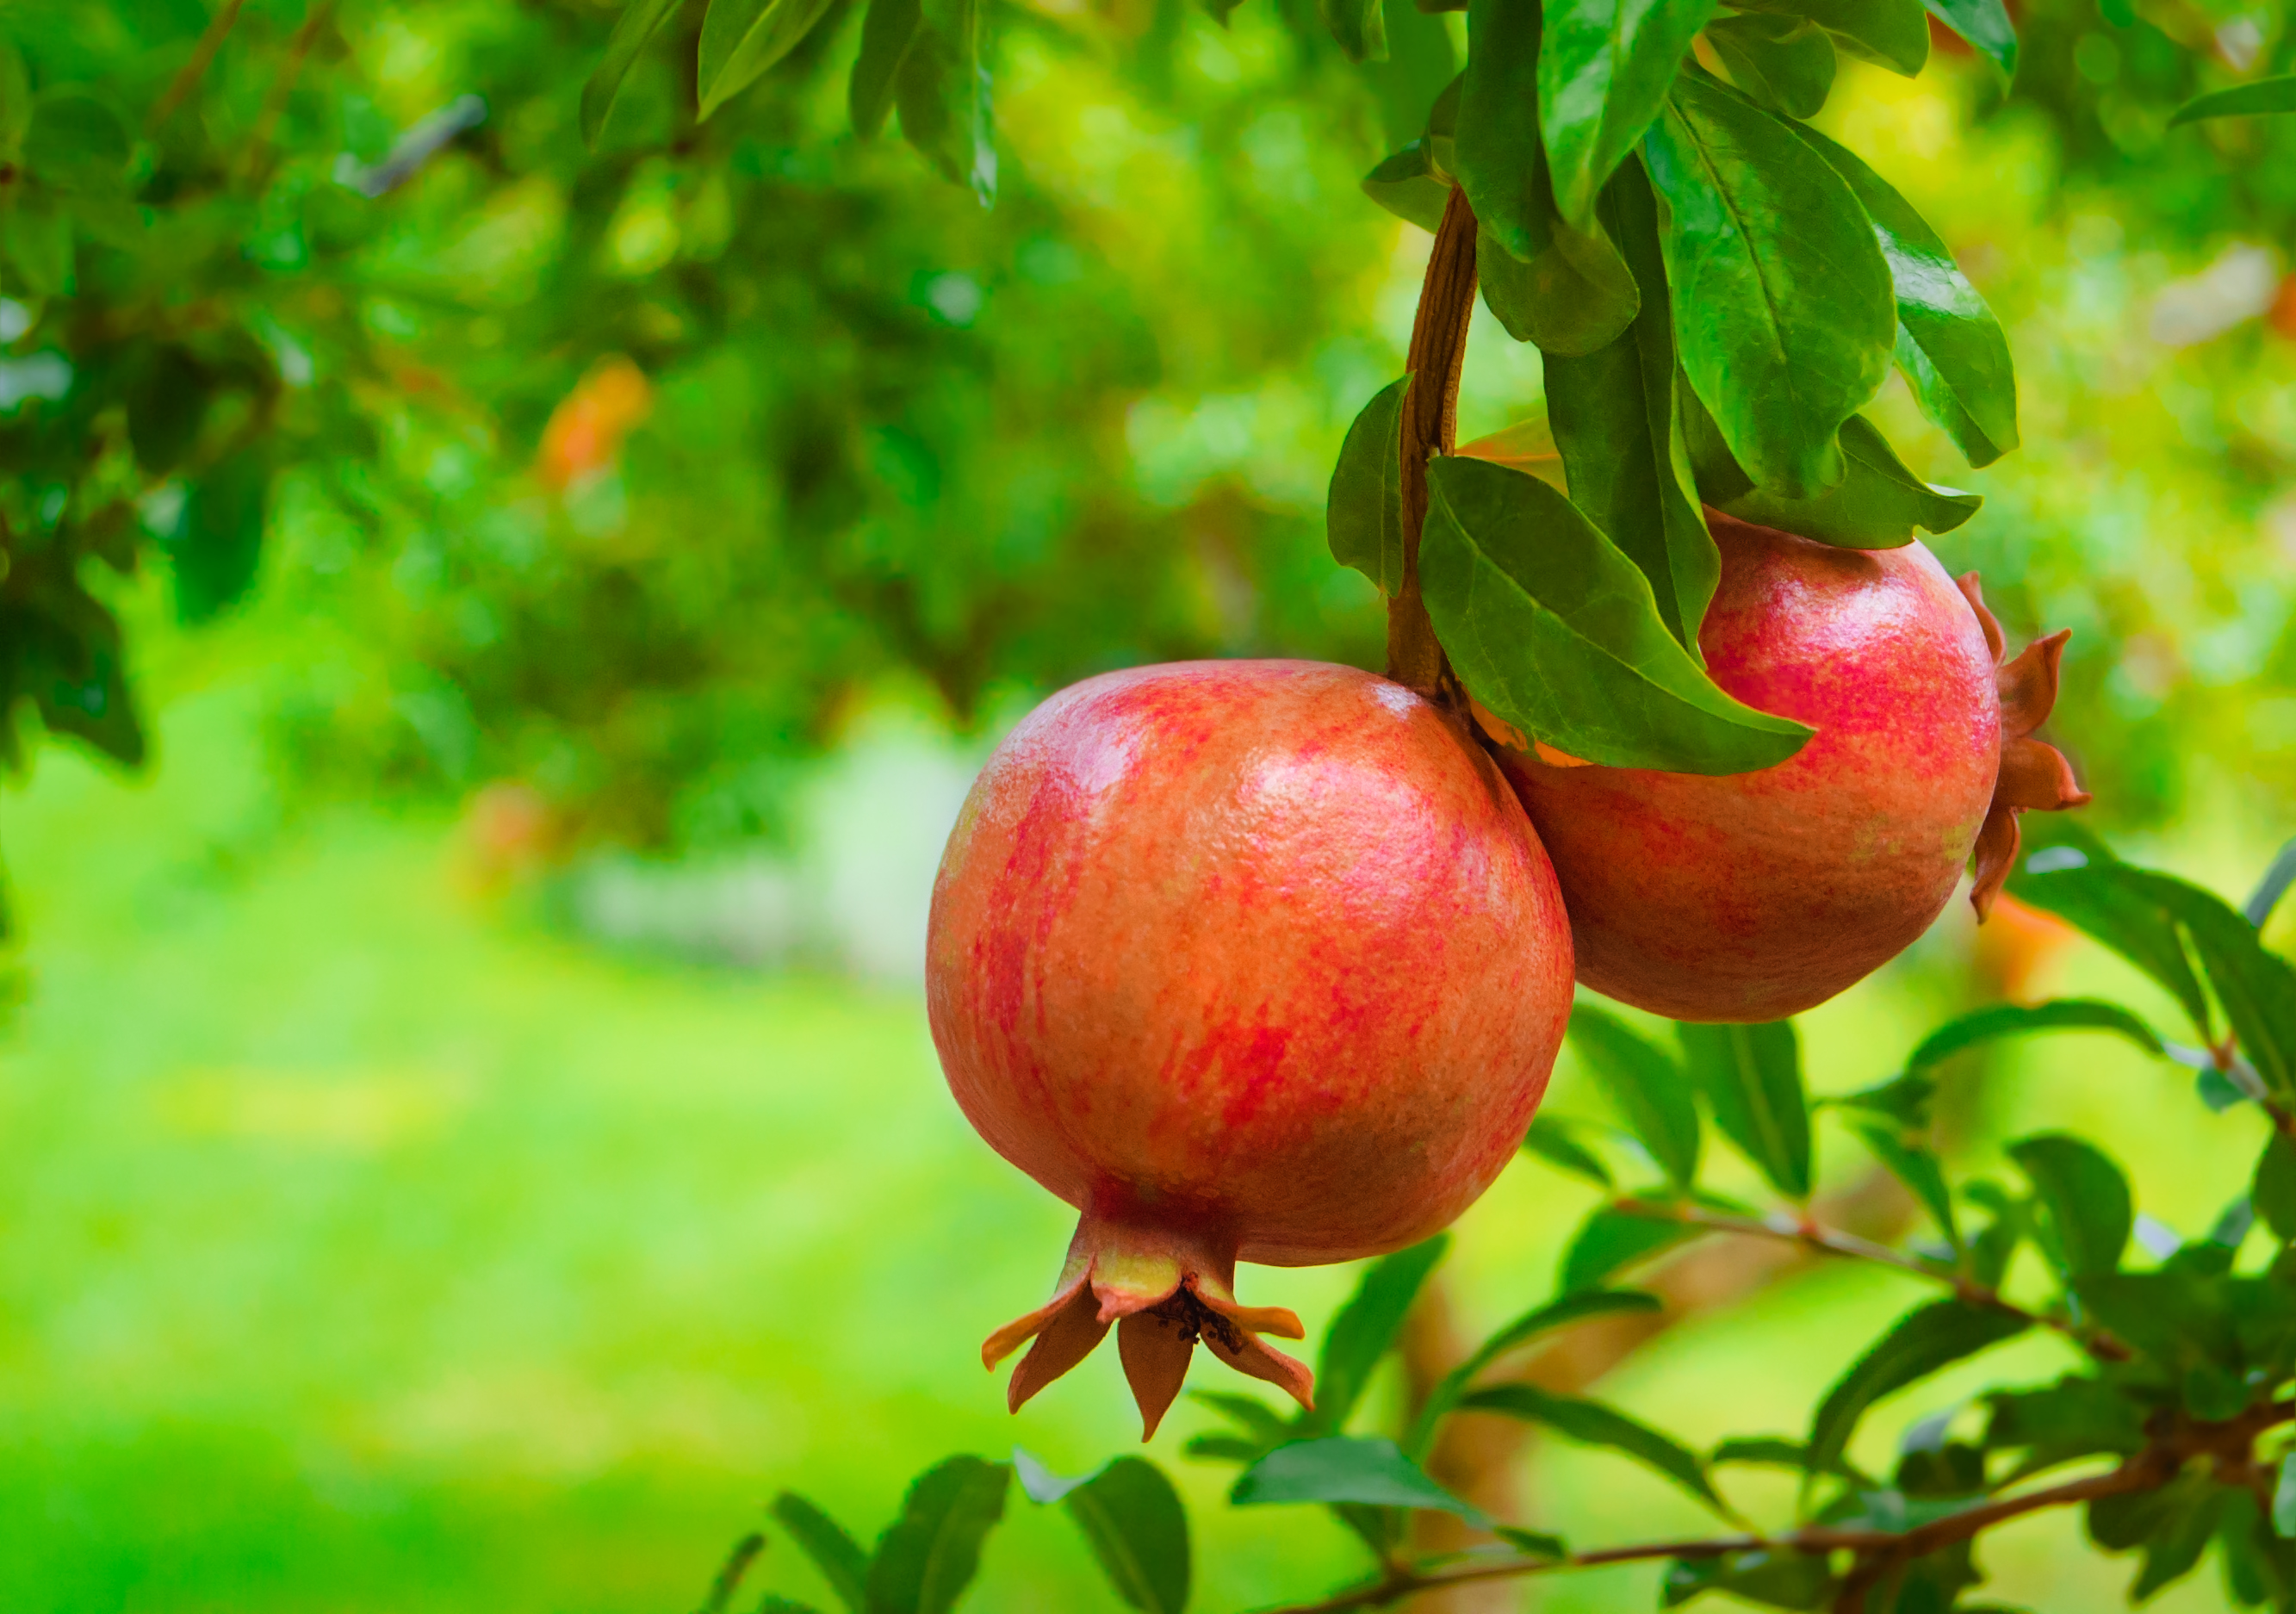 Nutripremier - Ripe Colorful Pomegranate Fruit on Tree Branch